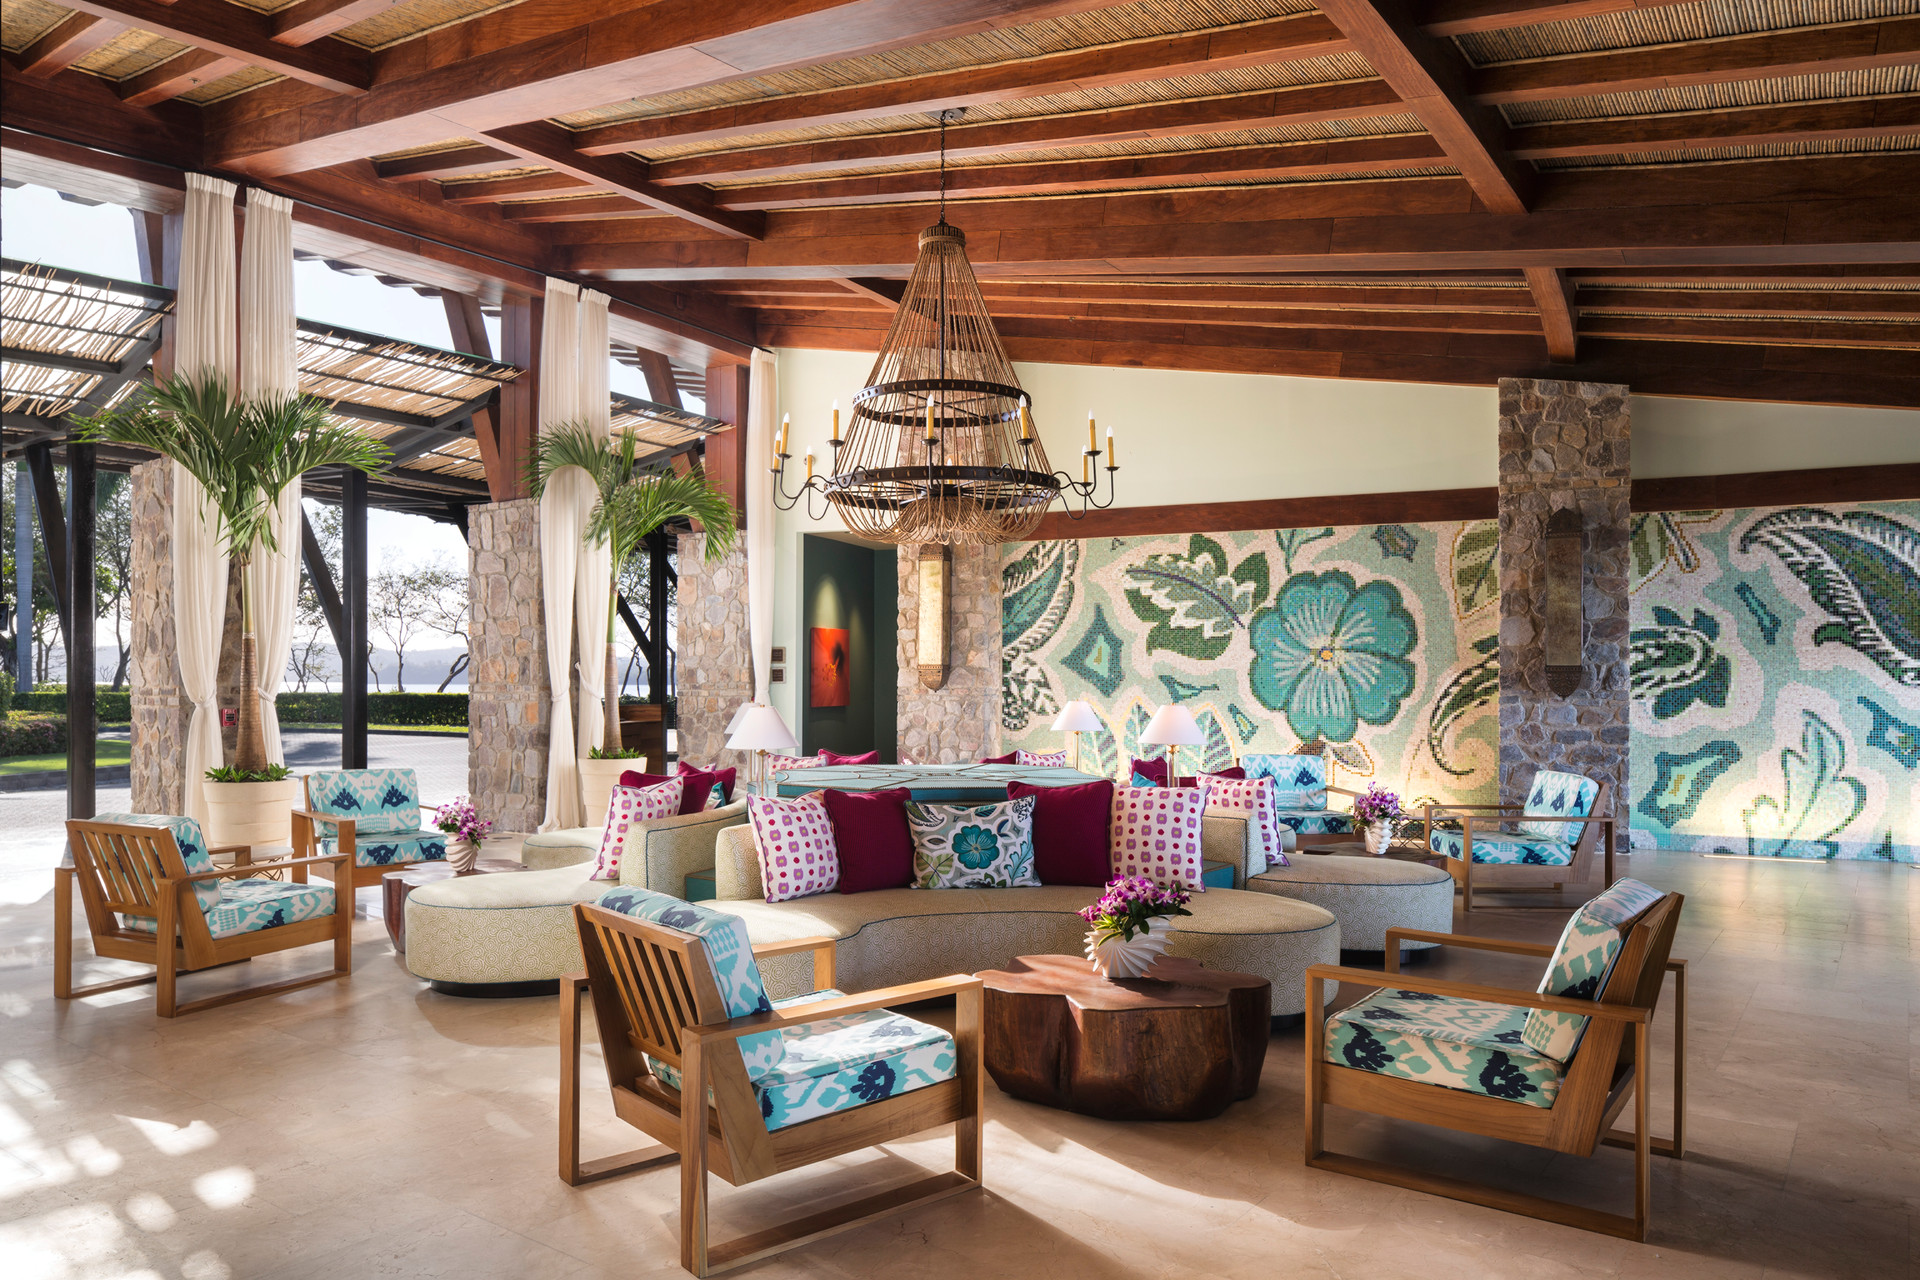 South_America_Costa_Rica_Four_Seasons_Room.jpg